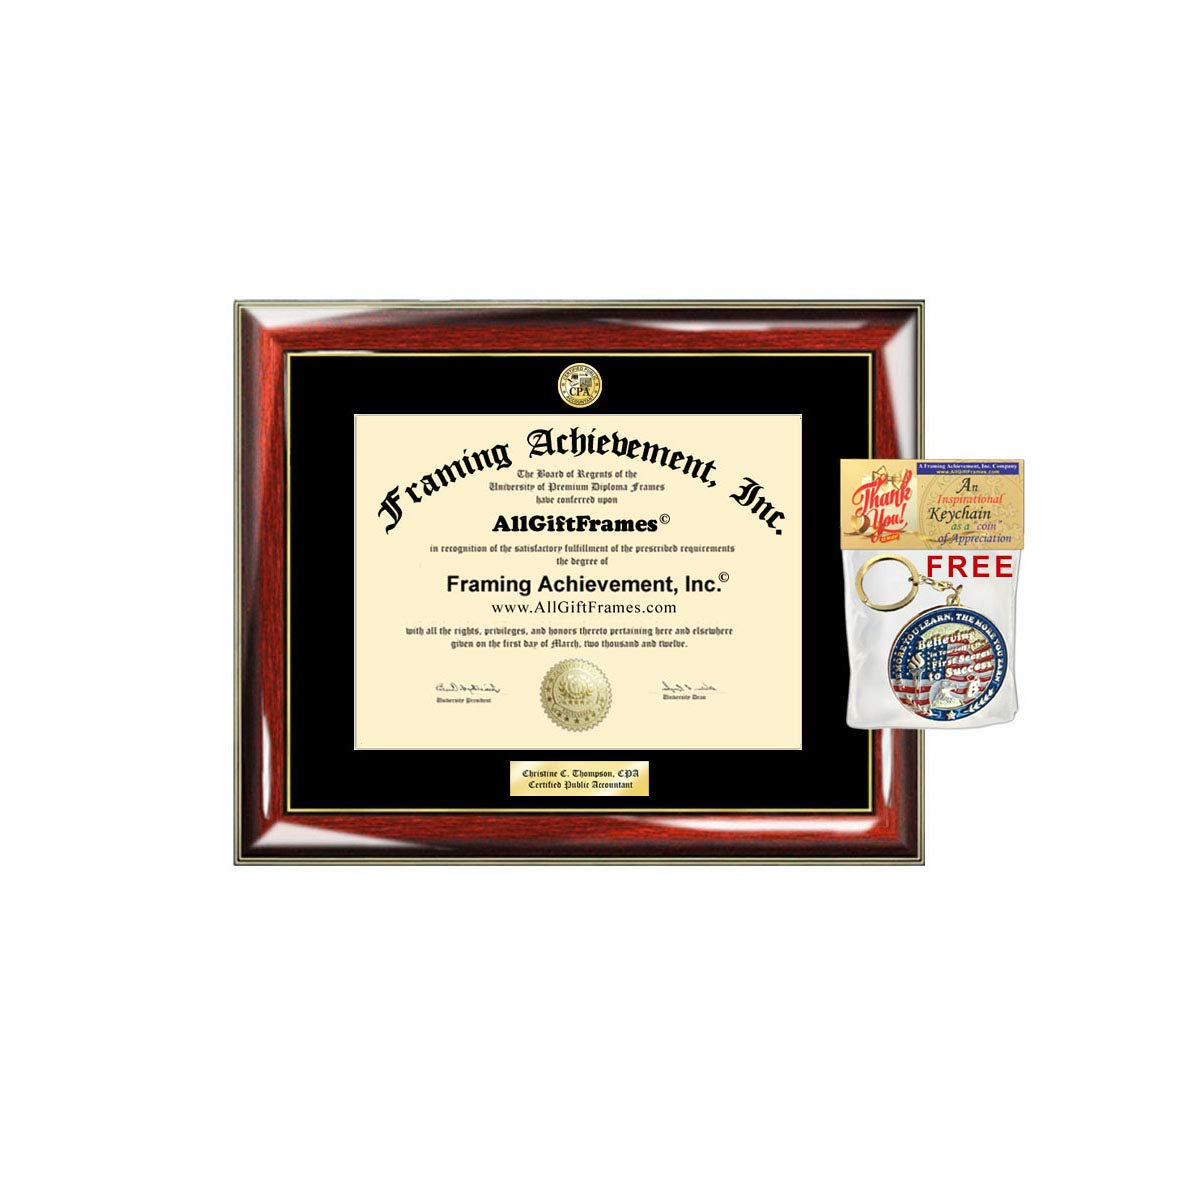 State Board CPA Certificate Frame Certified Public Accountant License Holder Certificate Plaque Personalize Logo Document Diploma Engrave Accountant Enrolled Agent Degree Accountancy